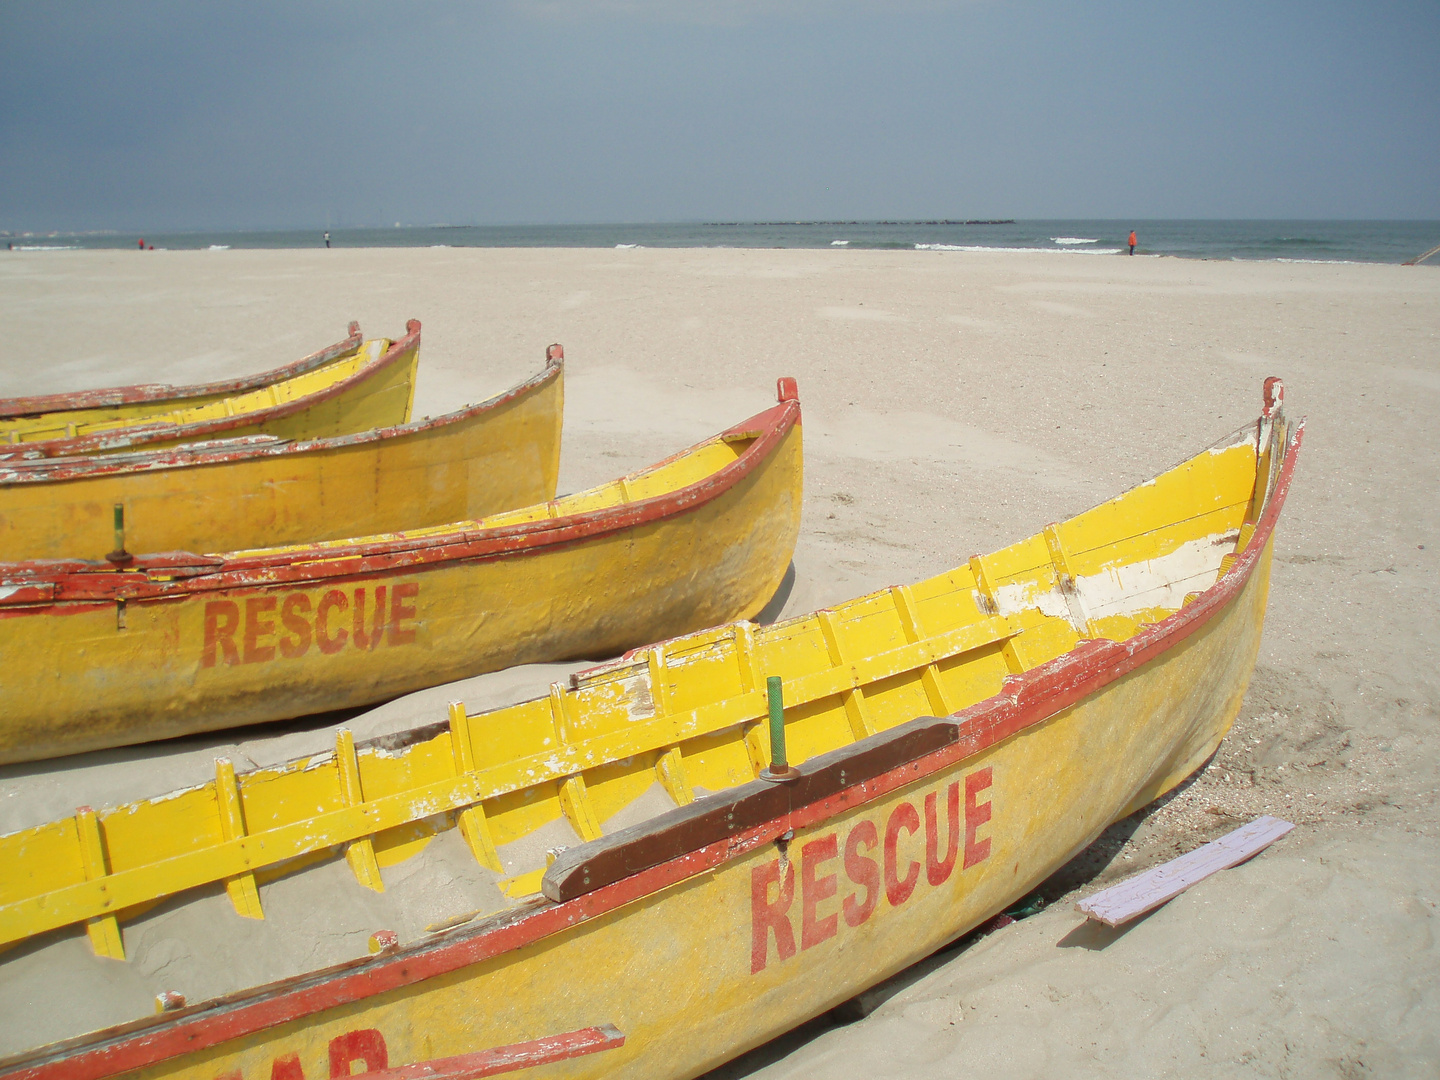 Rescue boats waiting